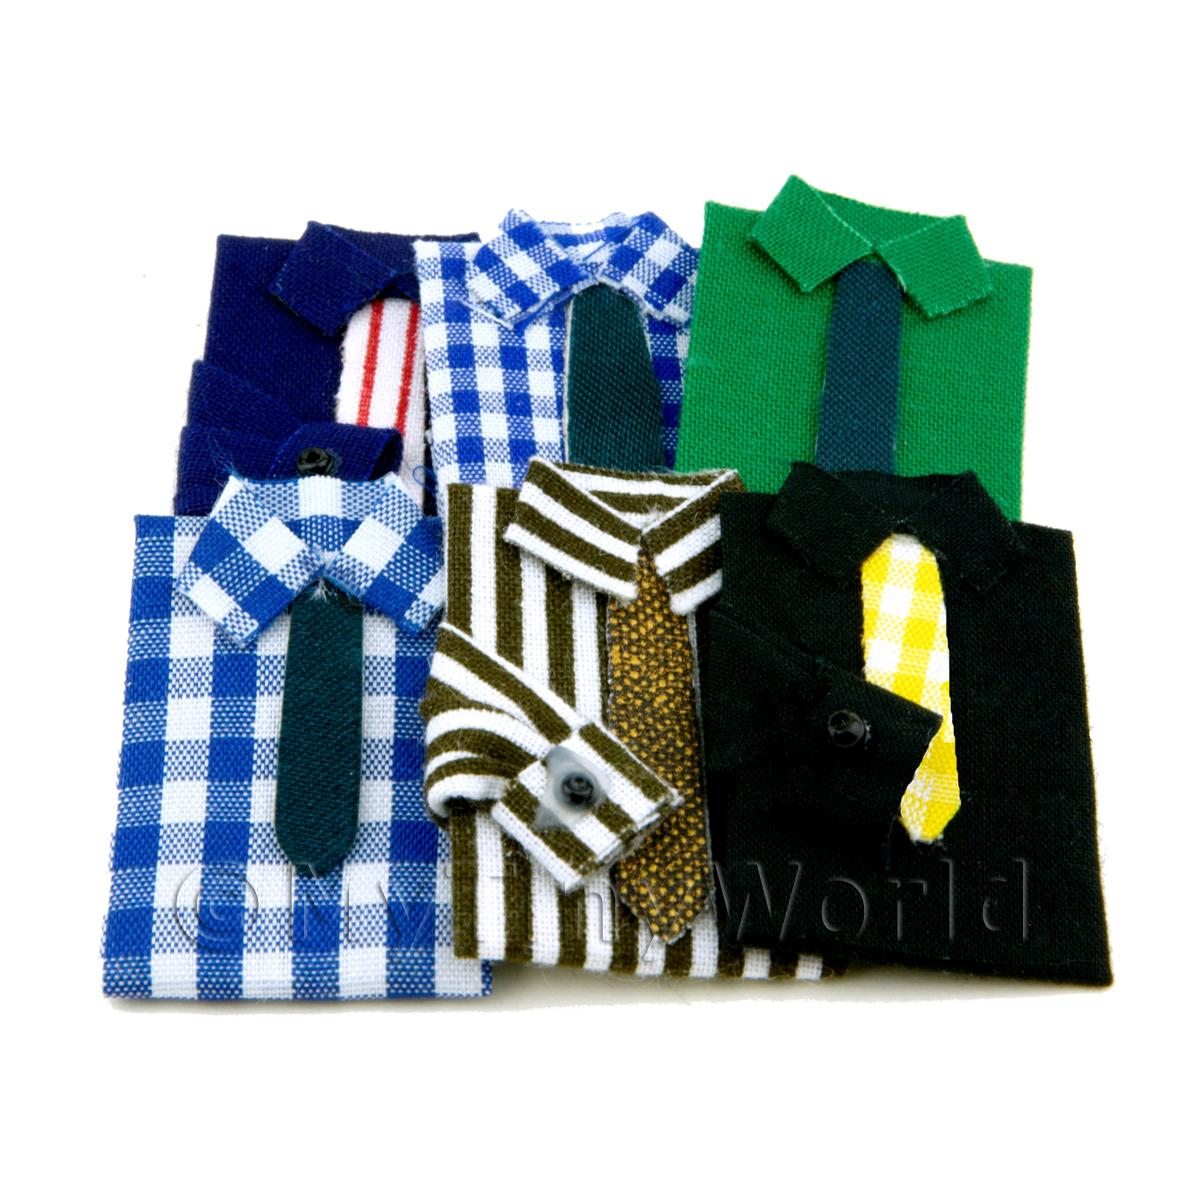 Dolls House Miniature Set of 6 Shirts With Ties